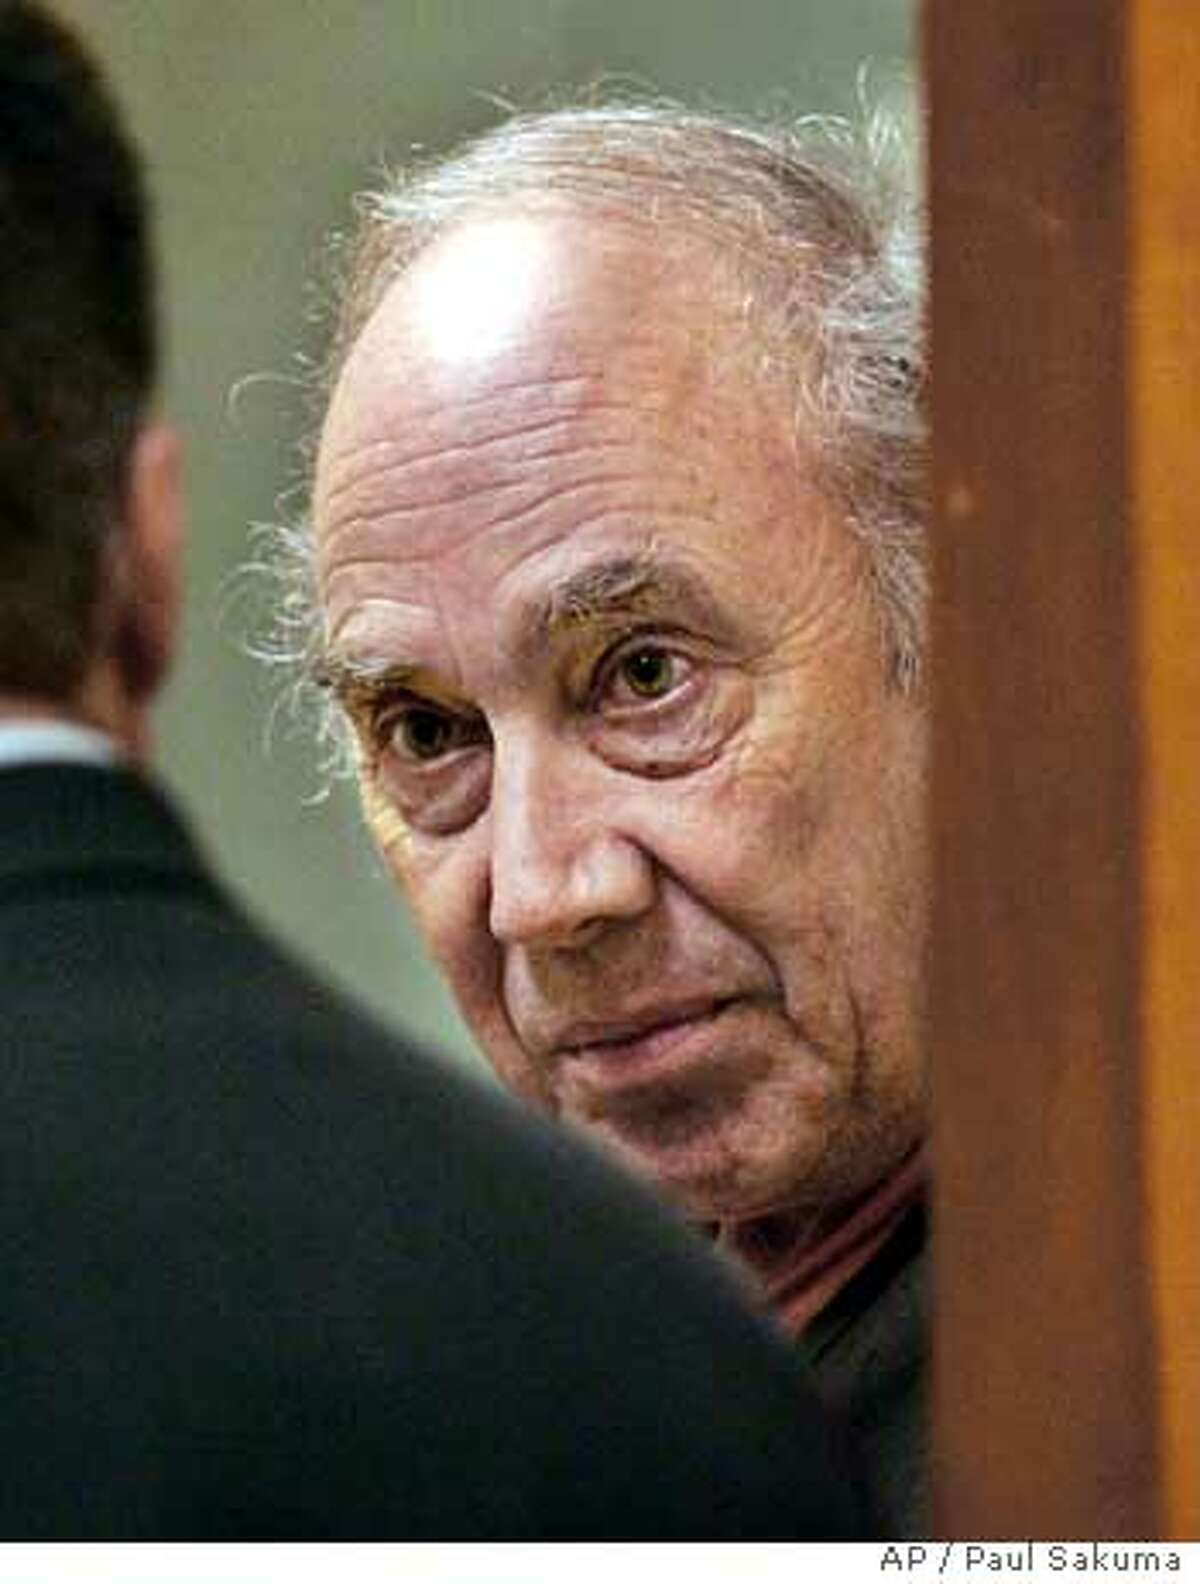 ** FILE **Dean Arthur Schwartzmiller, right, is shown in a doorway of a San Jose, Calif., courtroom, Wednesday, June 22, 2005, during a scheduled court appearance, as he listens to his attorney, public defender Ken Mandel, at left. Schwartzmiller, charged with abusing two 12-year-old boys, was set to appear in court Wednesday, Nov. 16, 2005 for a preliminary hearing. He has pleaded not guilty to the charges. (AP Photo/Paul Sakuma) Ran on: 11-17-2005 Dean Arthur Schwartzmiller has pleaded not guilty to seven counts in the alleged molestation of two boys. Ran on: 08-29-2006 Dean Schwartz- miller has sex crimes convictions in other states; two verdicts were overturned.